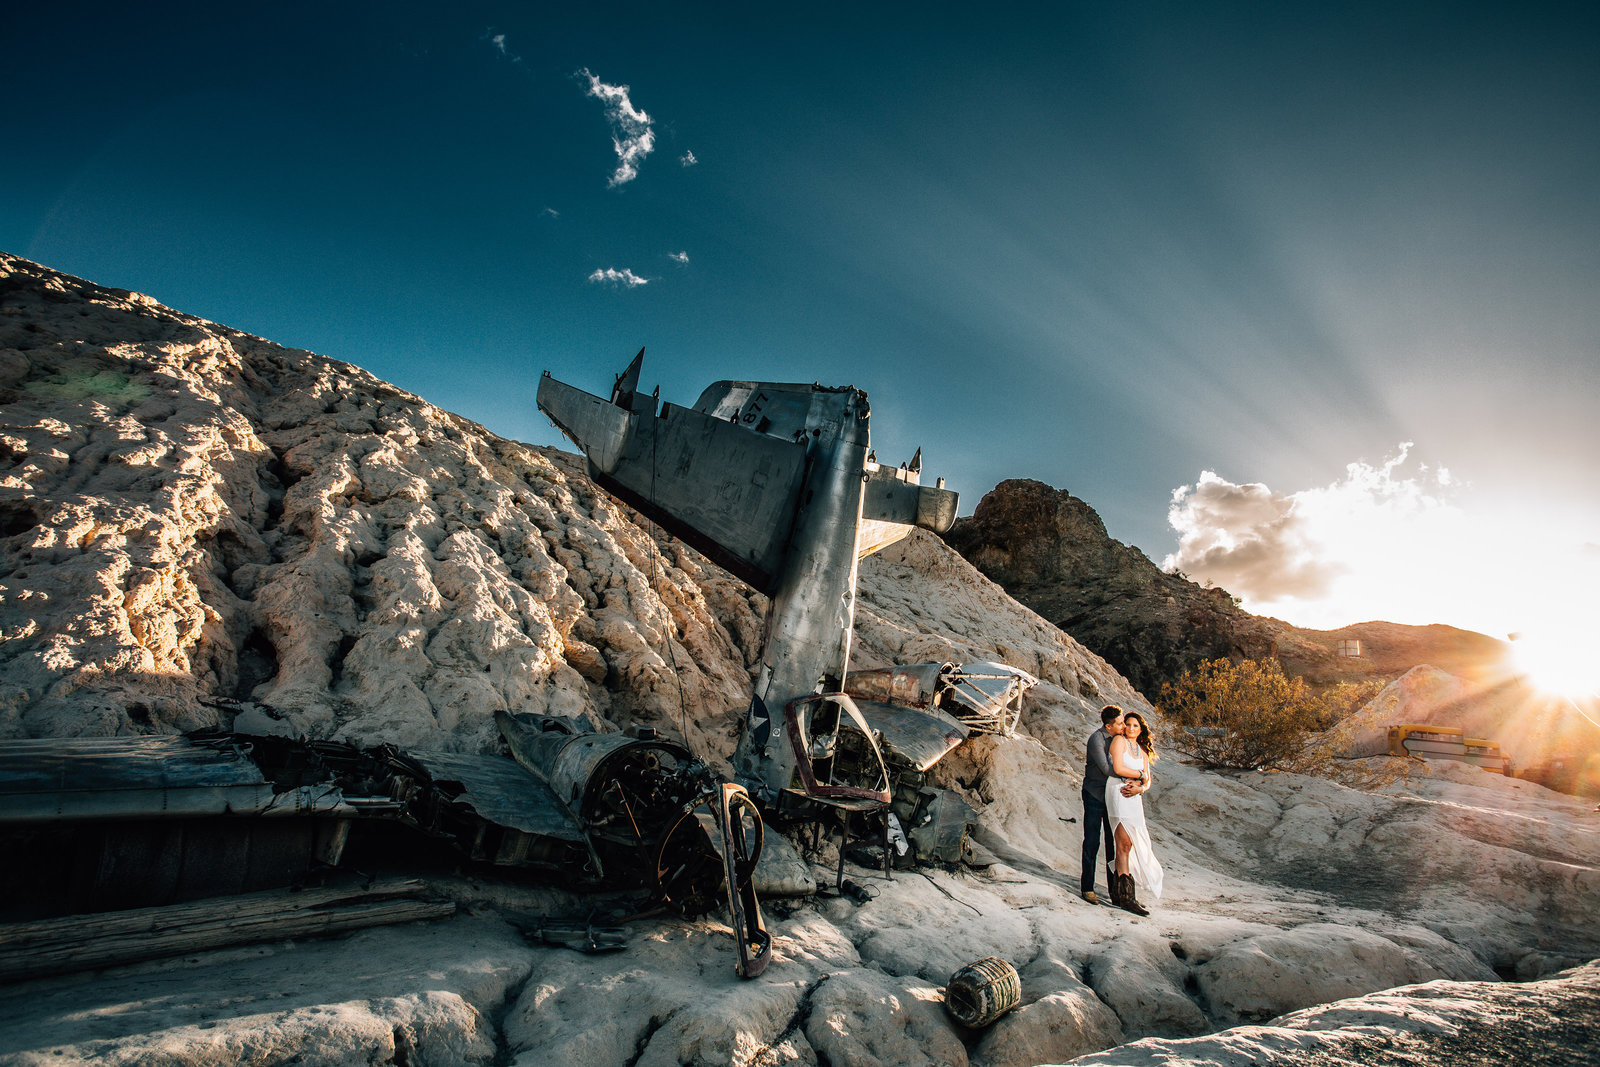 groom hugs bride near airplane wreck at nelsons ghost town